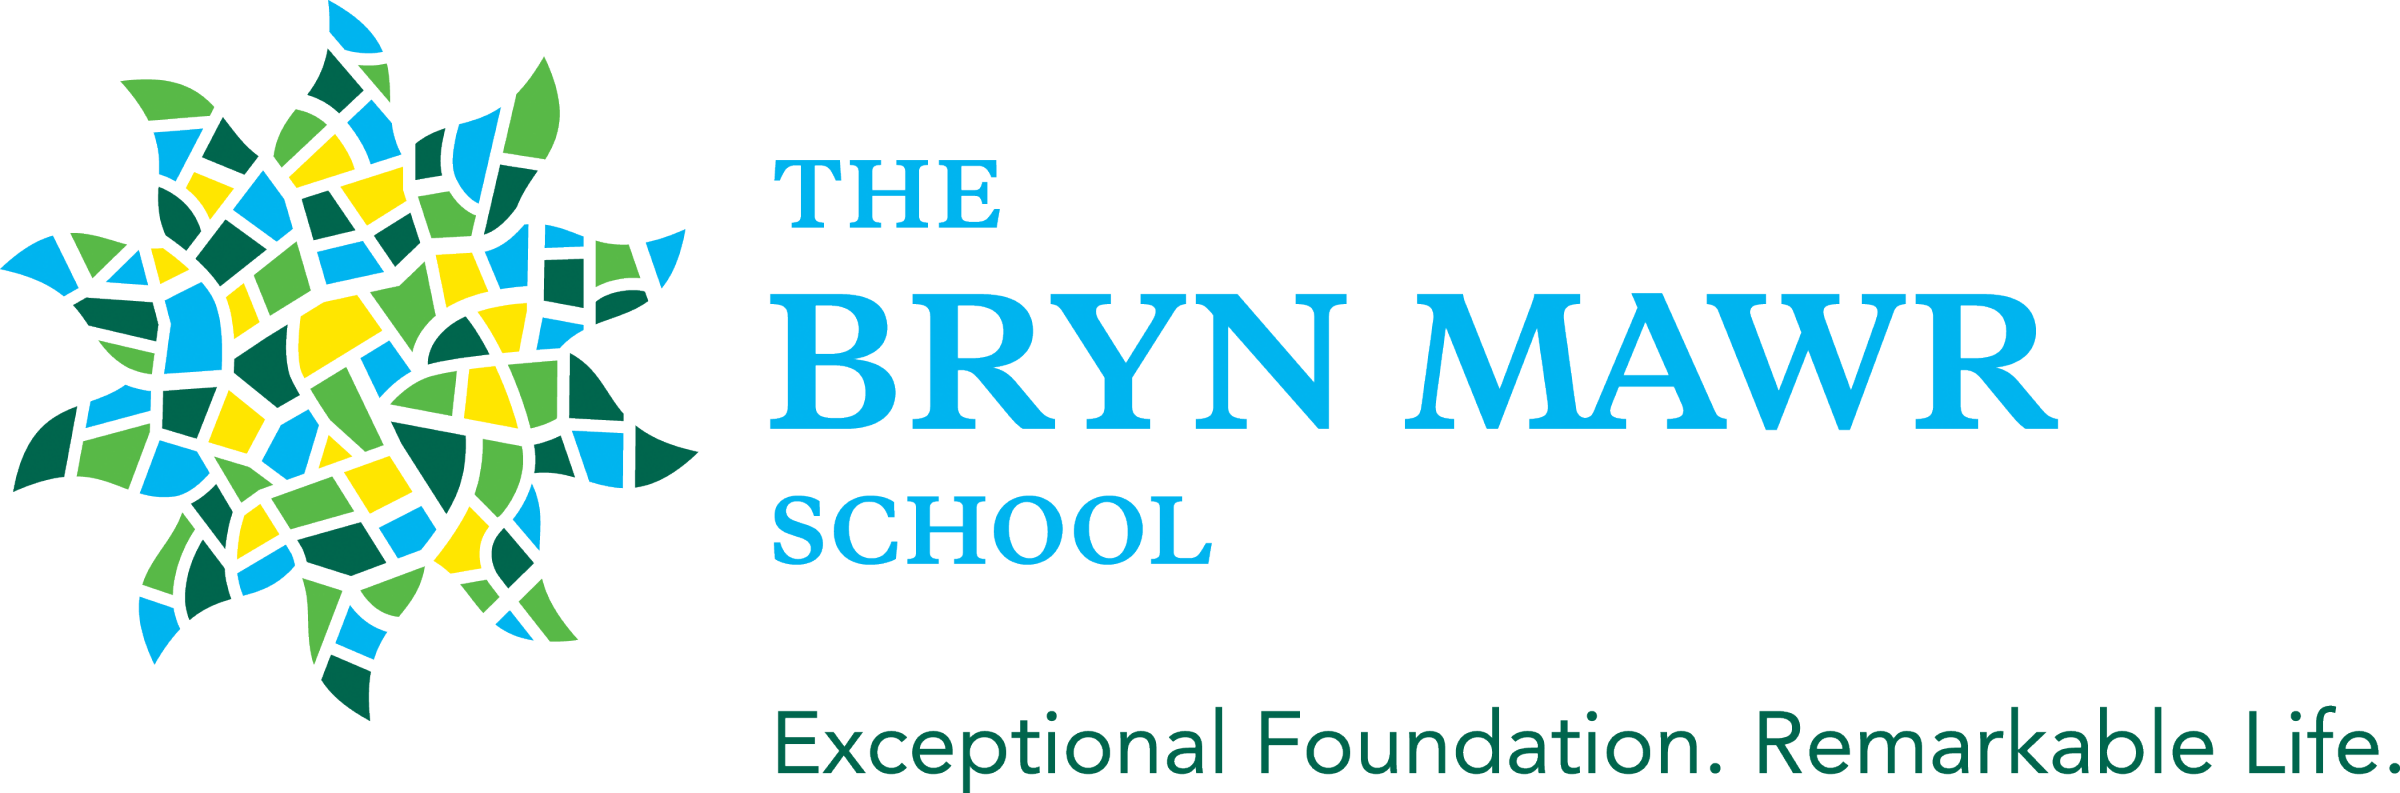 The Bryn Mawr School